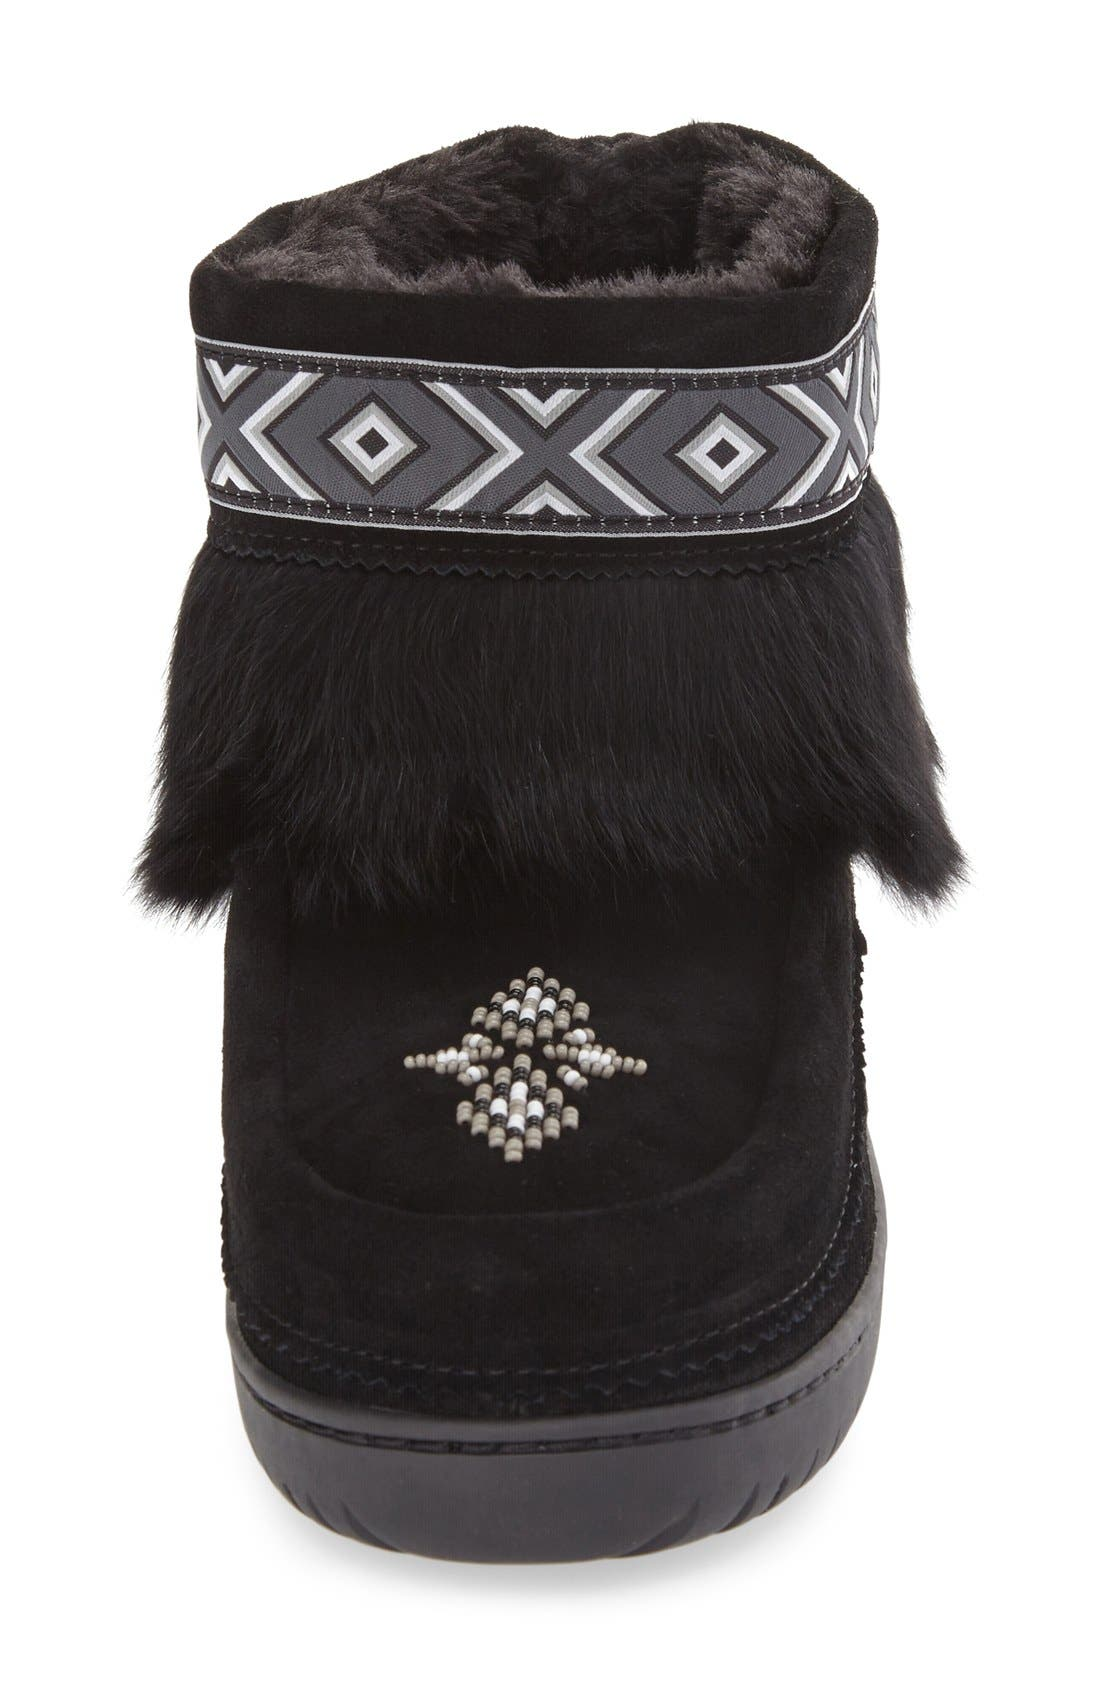 'Keewatin' Genuine Shearling and Rabbit Fur Boot,                             Alternate thumbnail 4, color,                             Black Rabbit Fur Suede